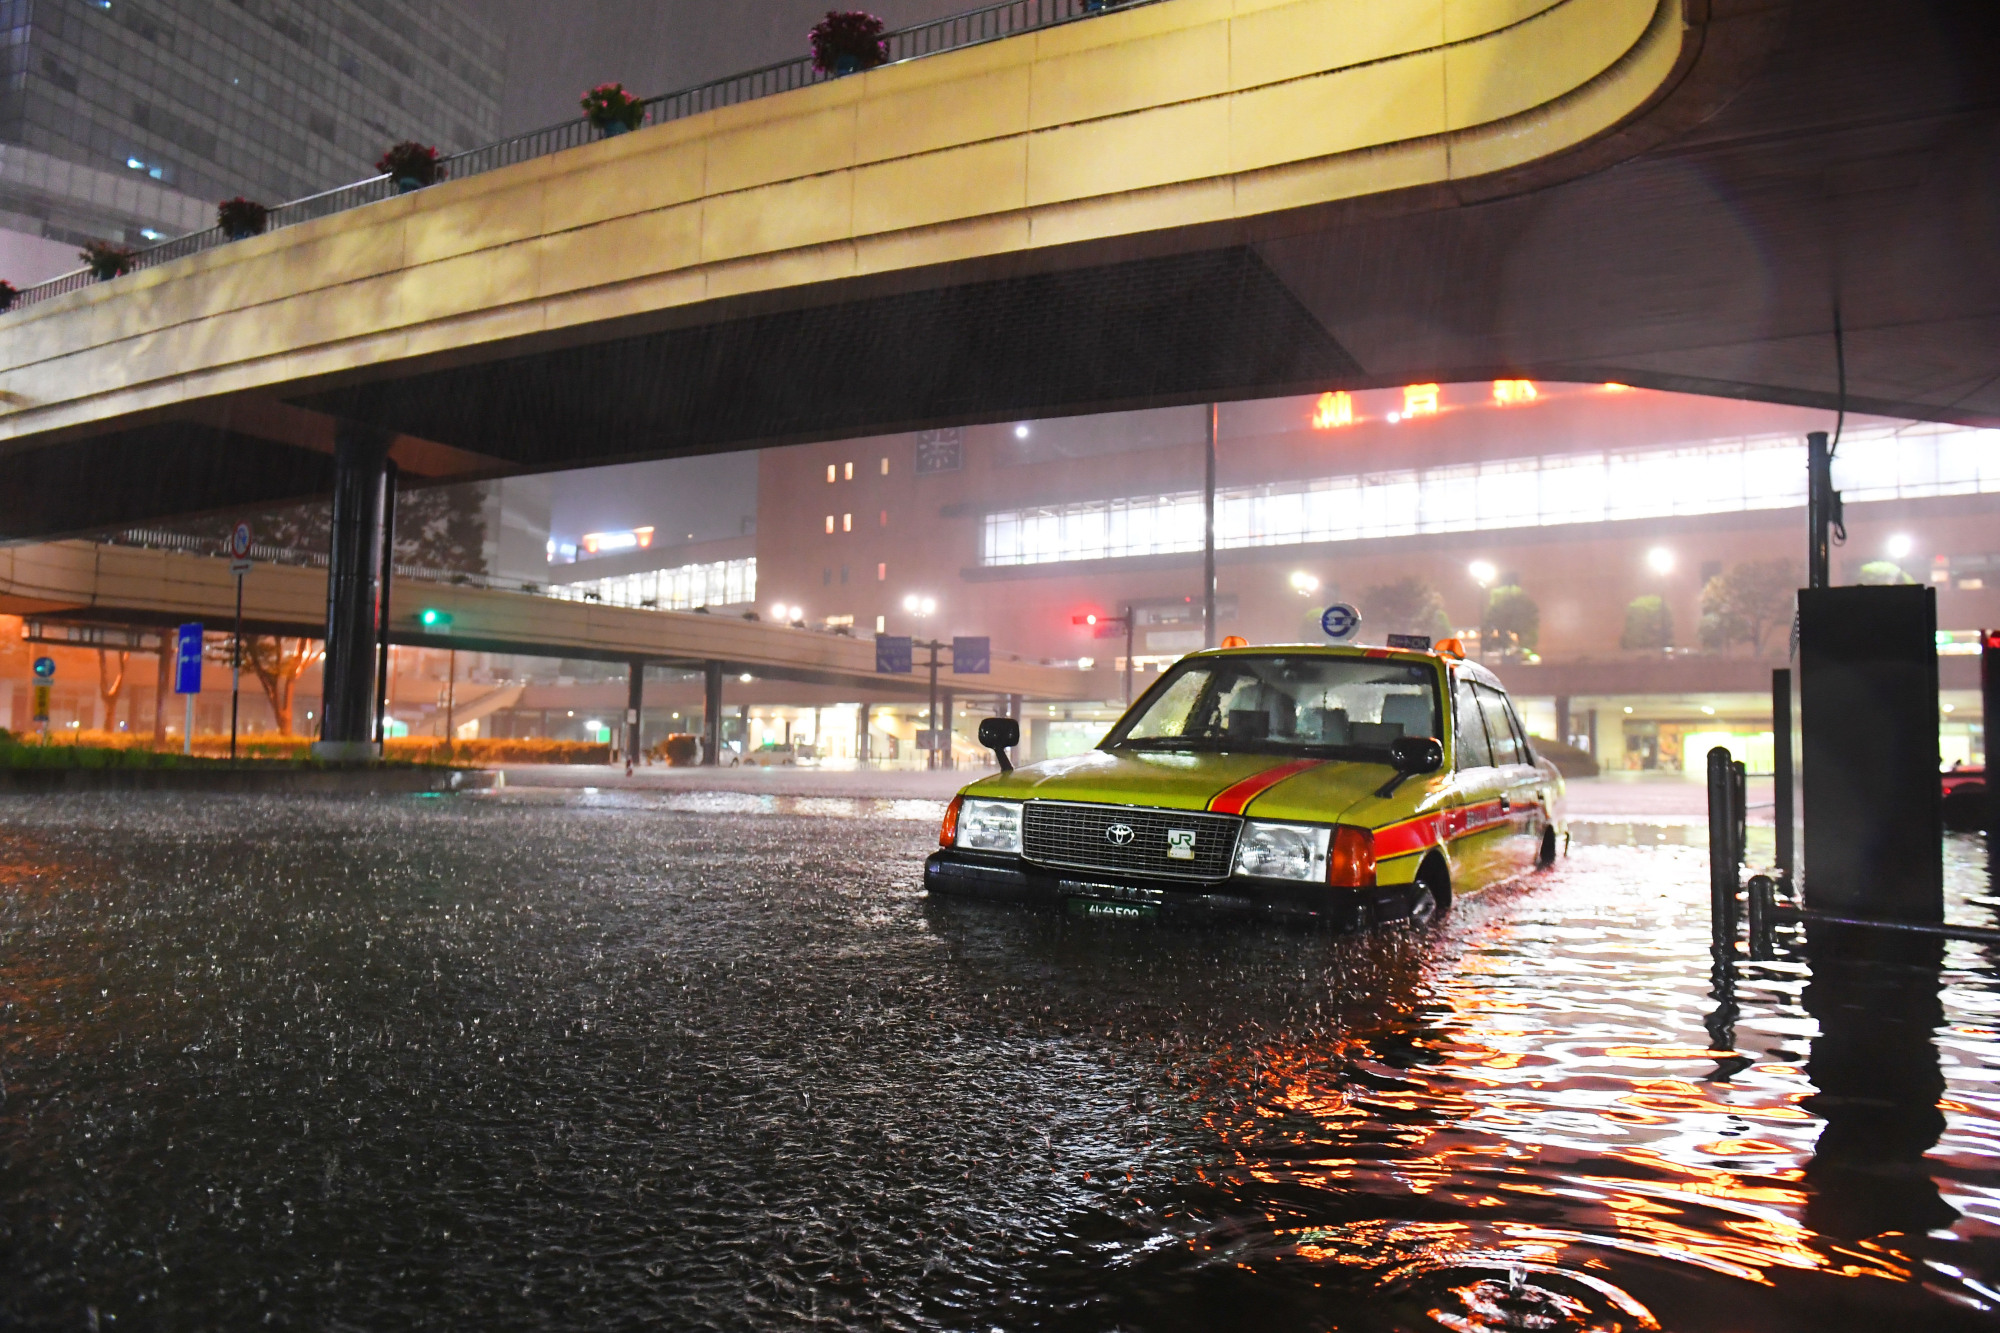 A street in Sendai is flooded on Oct. 13 after Typhoon Hagibis caused heavy rain in the area. | KAHOKU SHIMPO